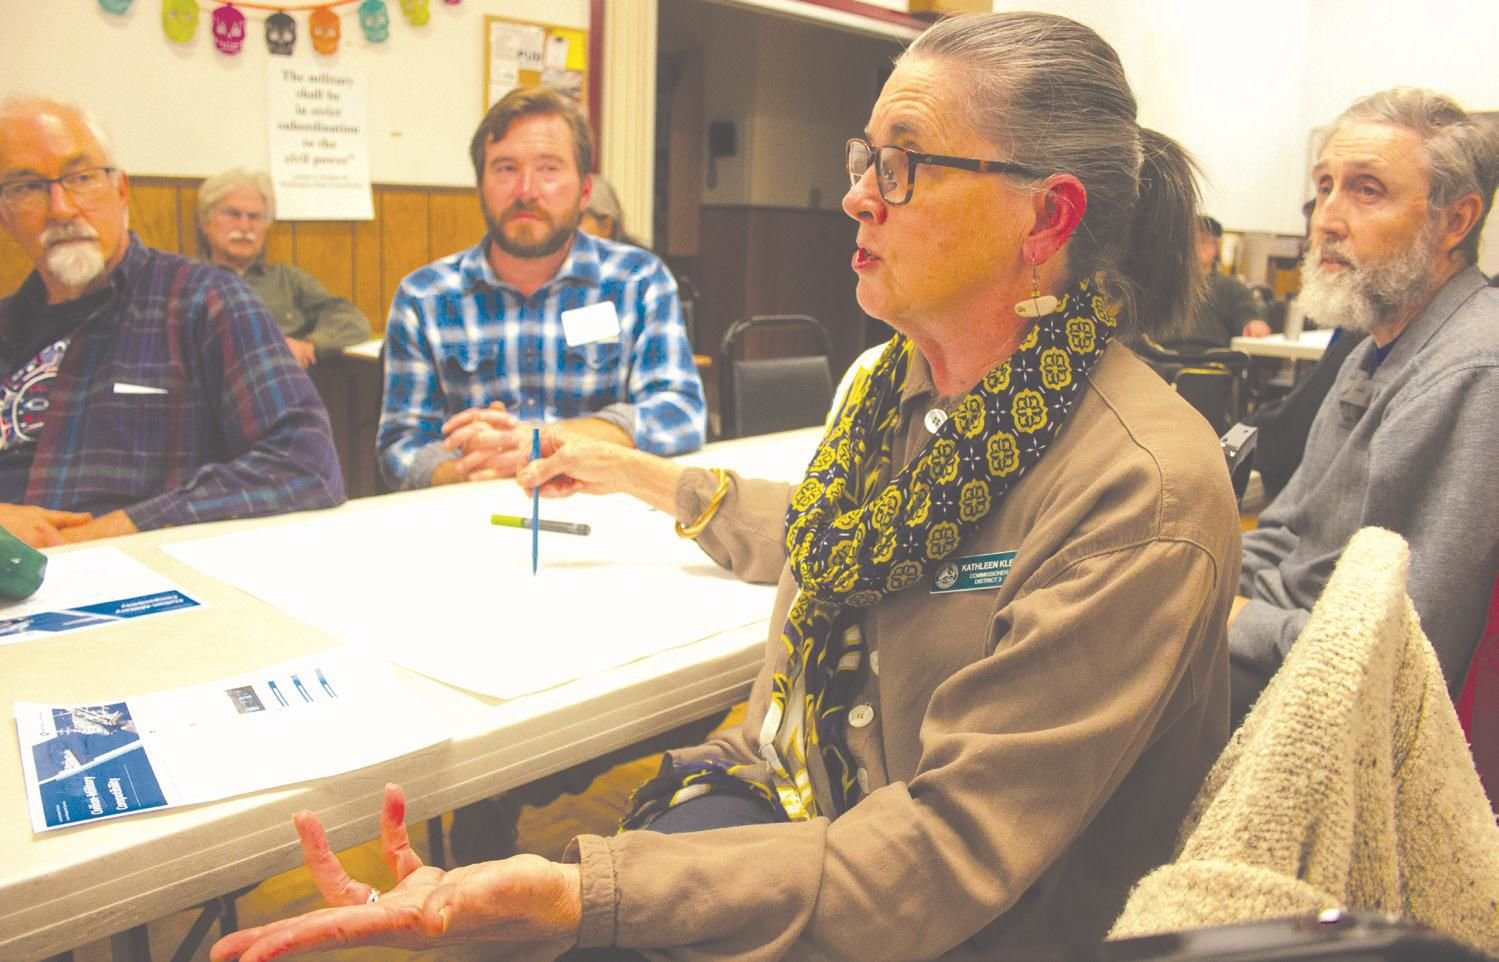 Jefferson County Commissioner Kathleen Kler expresses her concerns to representatives of the state Department of Commerce about the military's land use development rights over the county, during an Oct. 30 meeting to solicit public input at the Tri-Area Community Center.